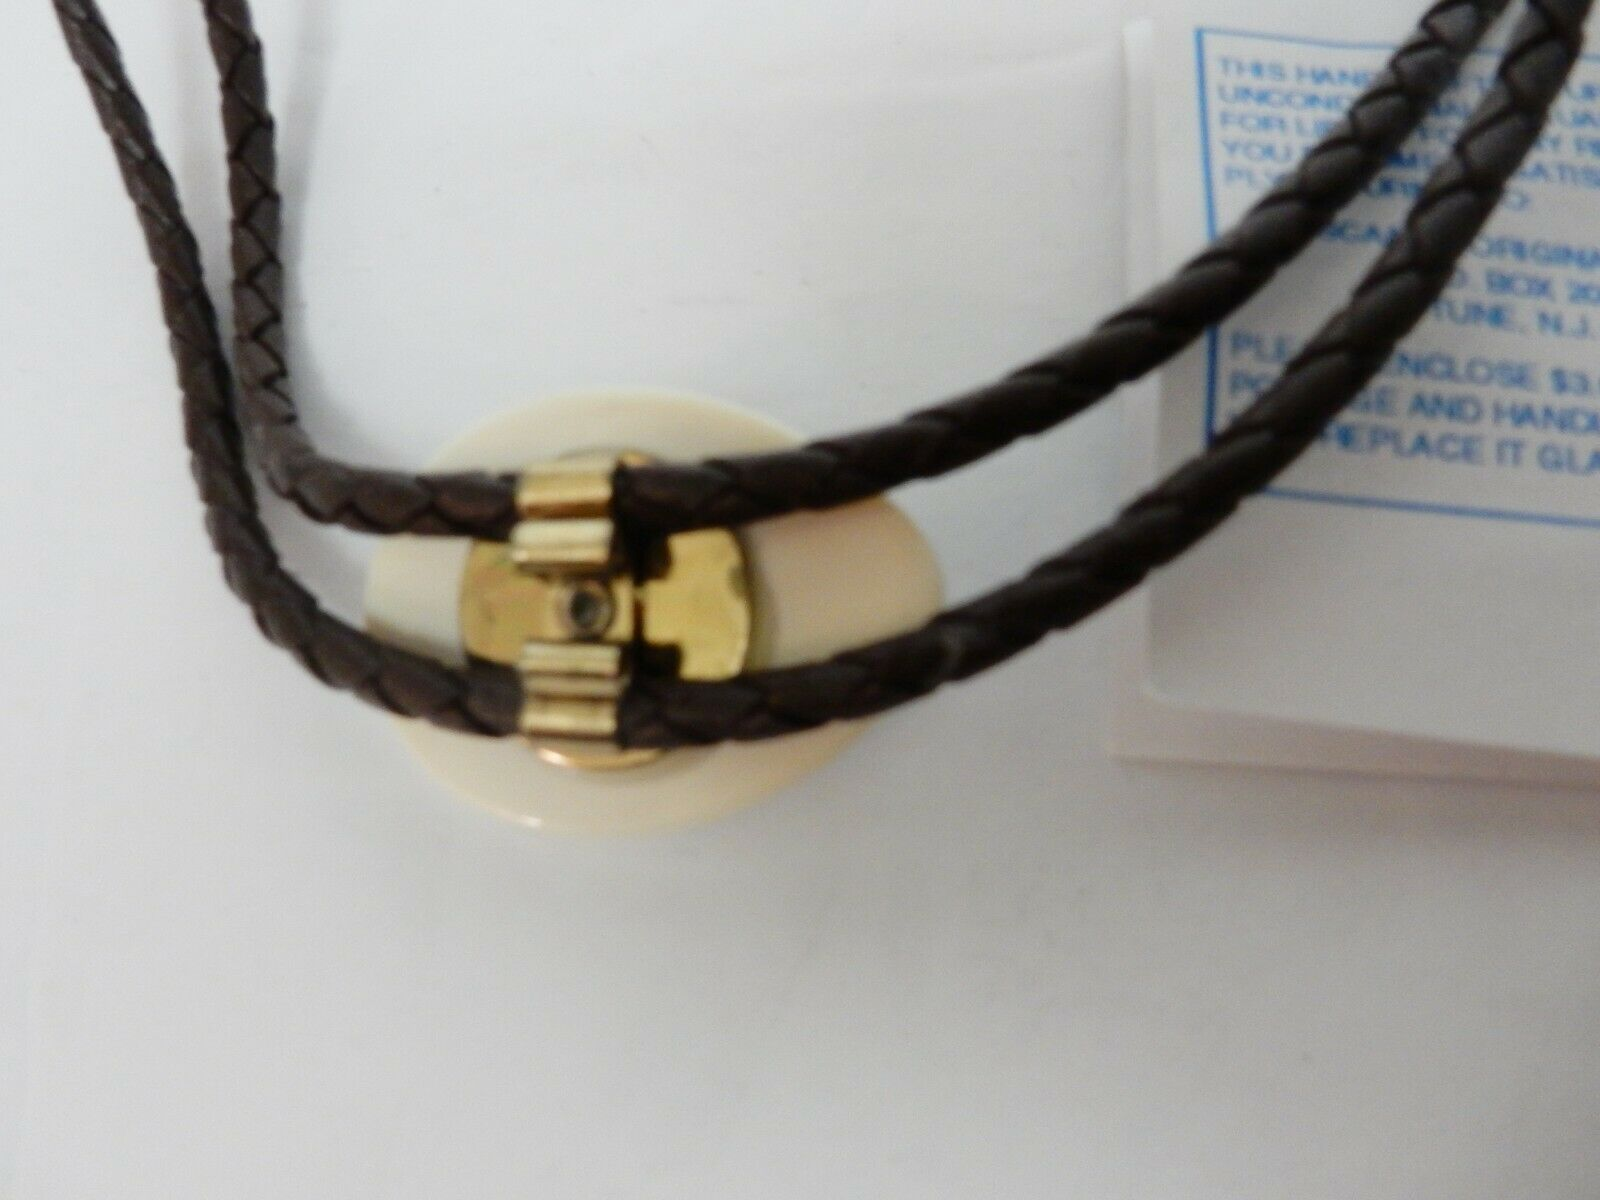 Bolo Tie Tips Gold Plated Heavy Ridged Ball Style 25mm Long Pk//10